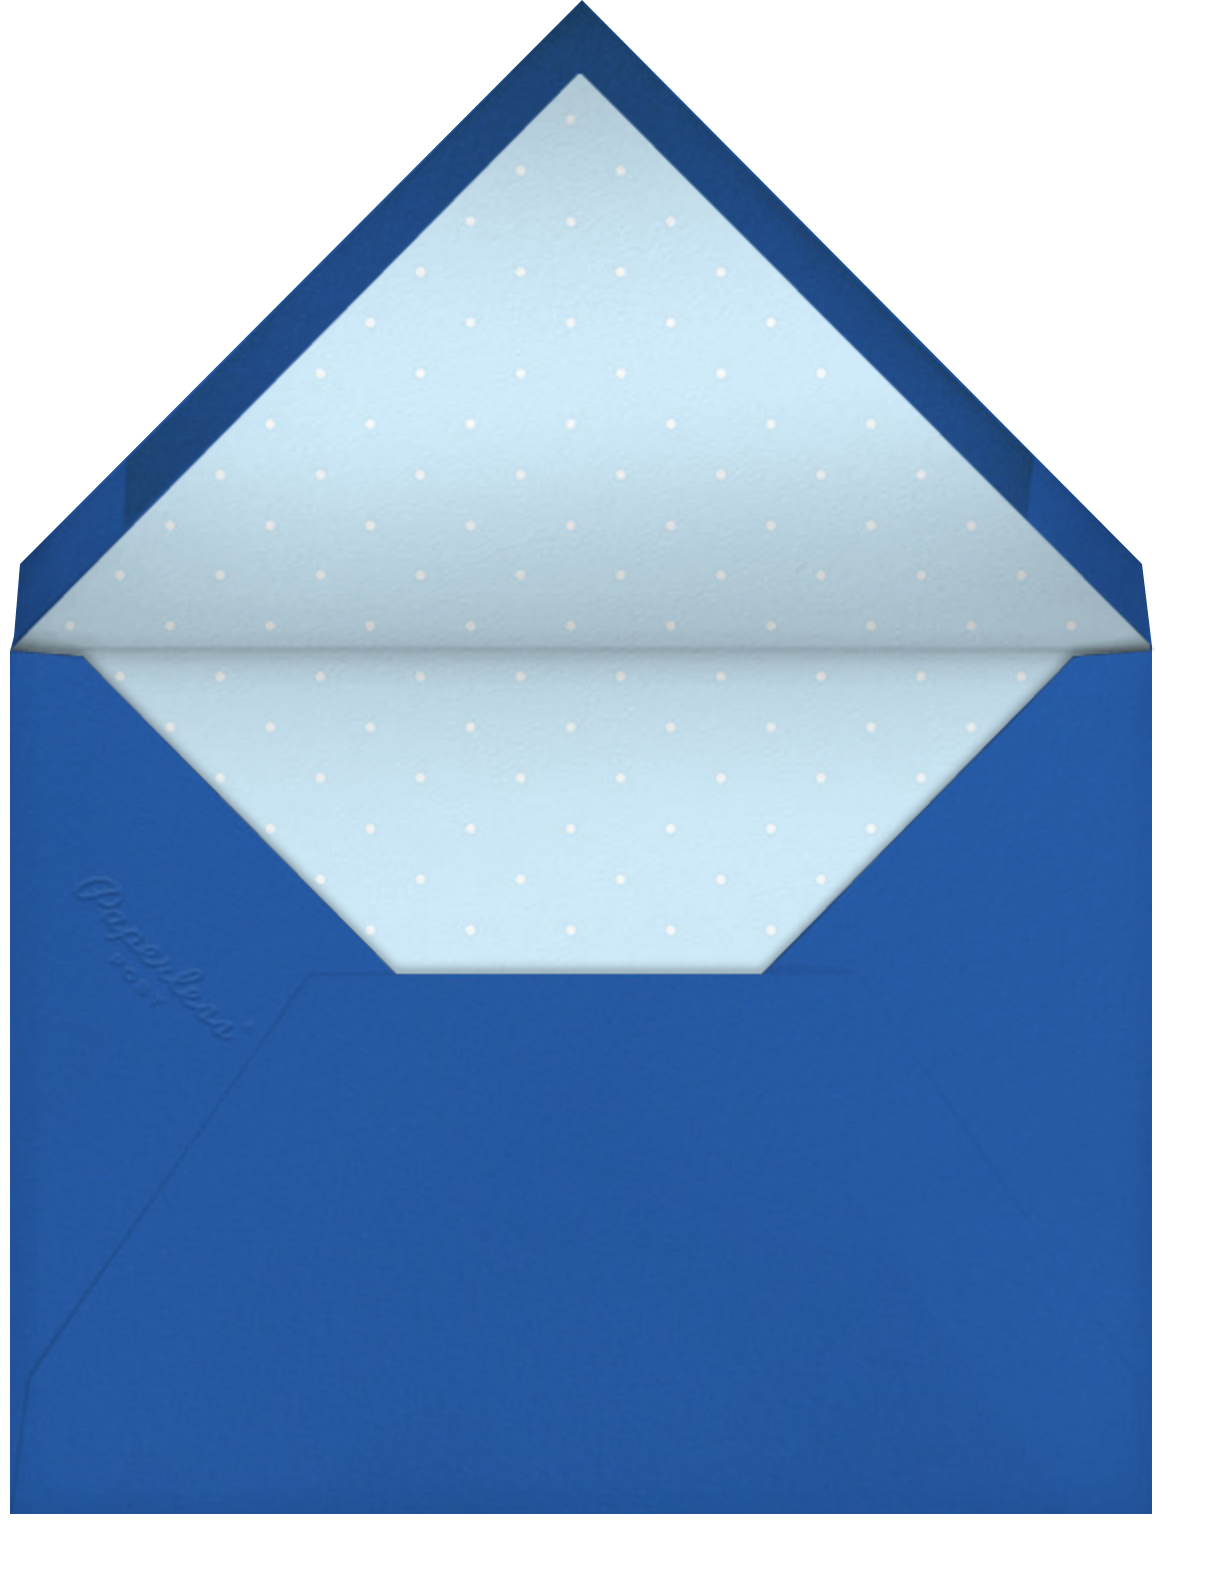 New Year Classic (Square) - Paperless Post - New Year - envelope back